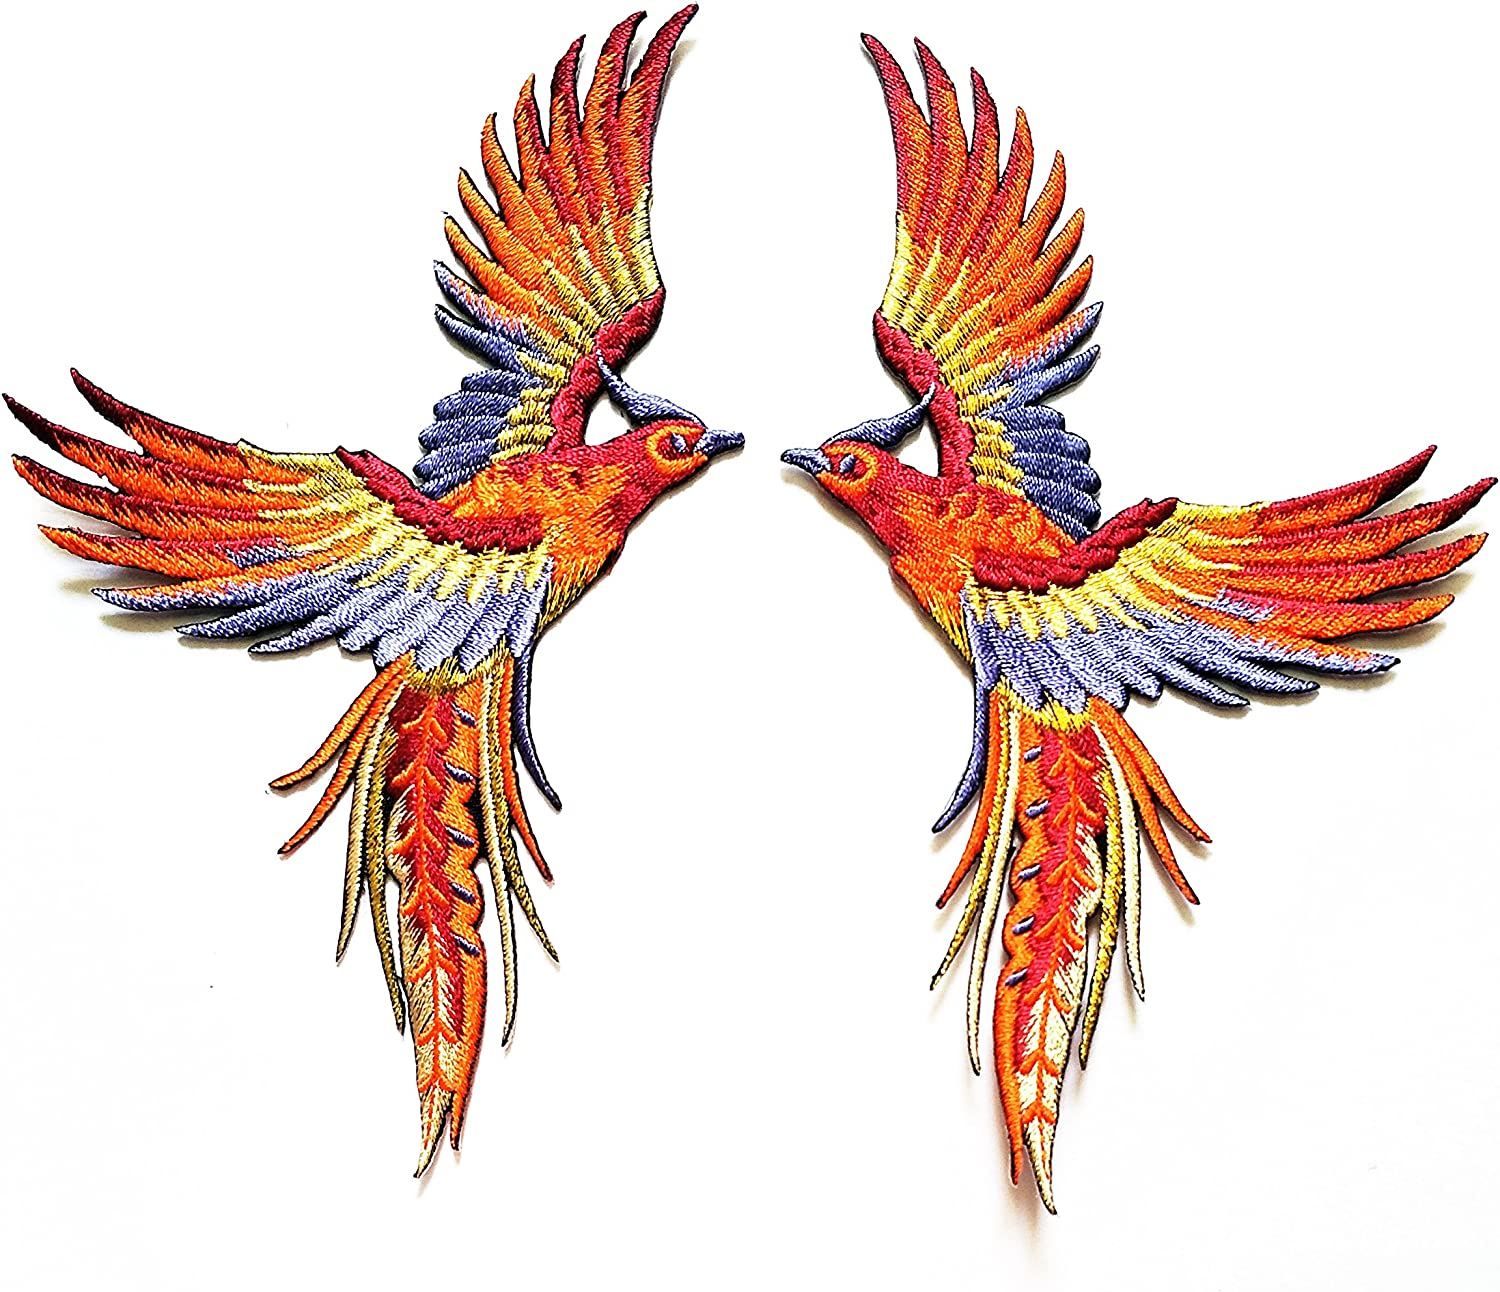 Nipitshop Patches Phoenix Phenix Birds Orange Wine Purple Gold Embroidered Appliques Iron-on Patches for Clothes Backpacks T-Shirt Jeans Skirt Vests Scarf Hat Bag